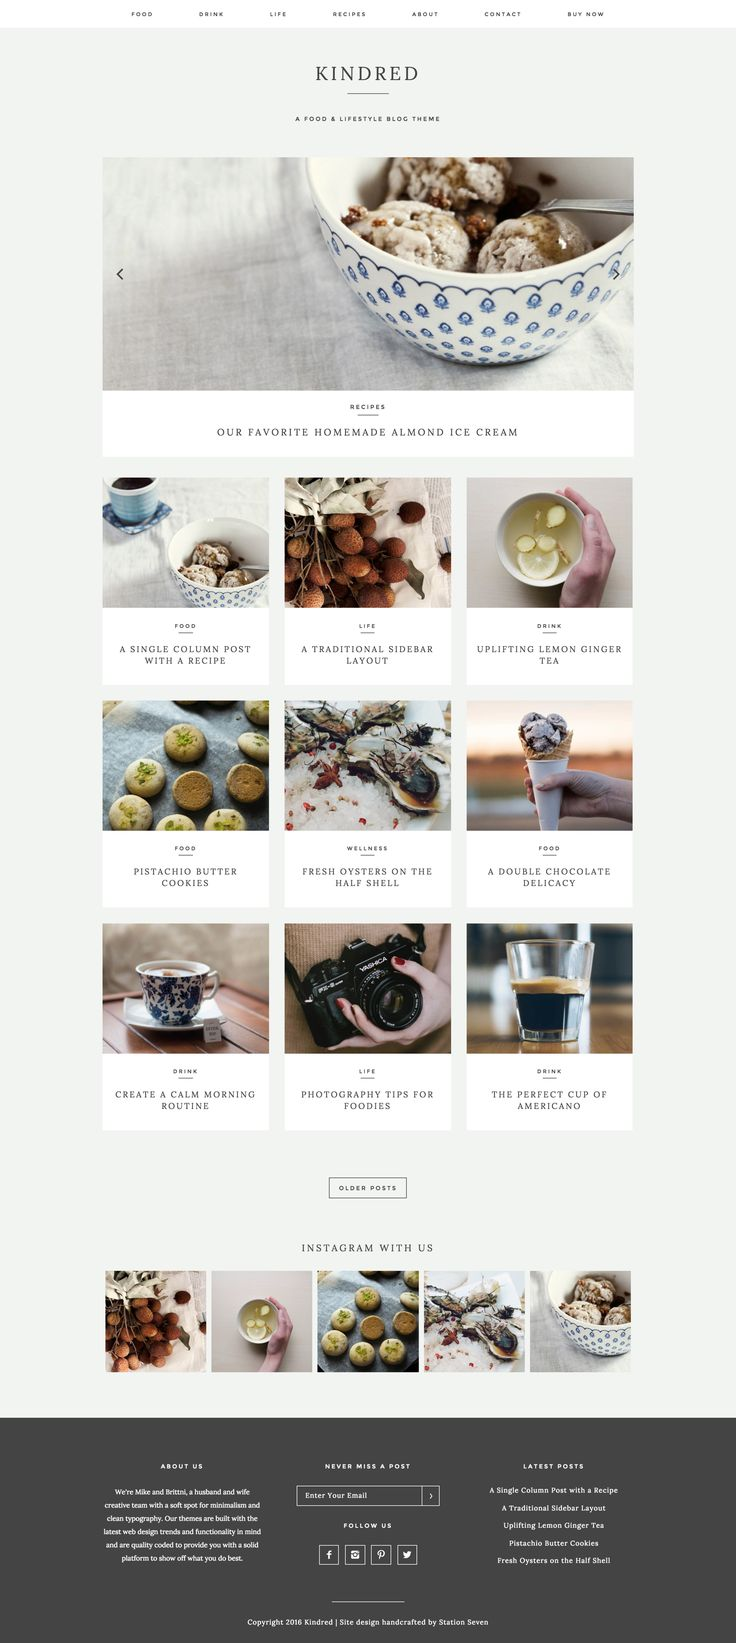 Kindred: A tasteful food and lifestyle blog with great styling and a layout to die for.